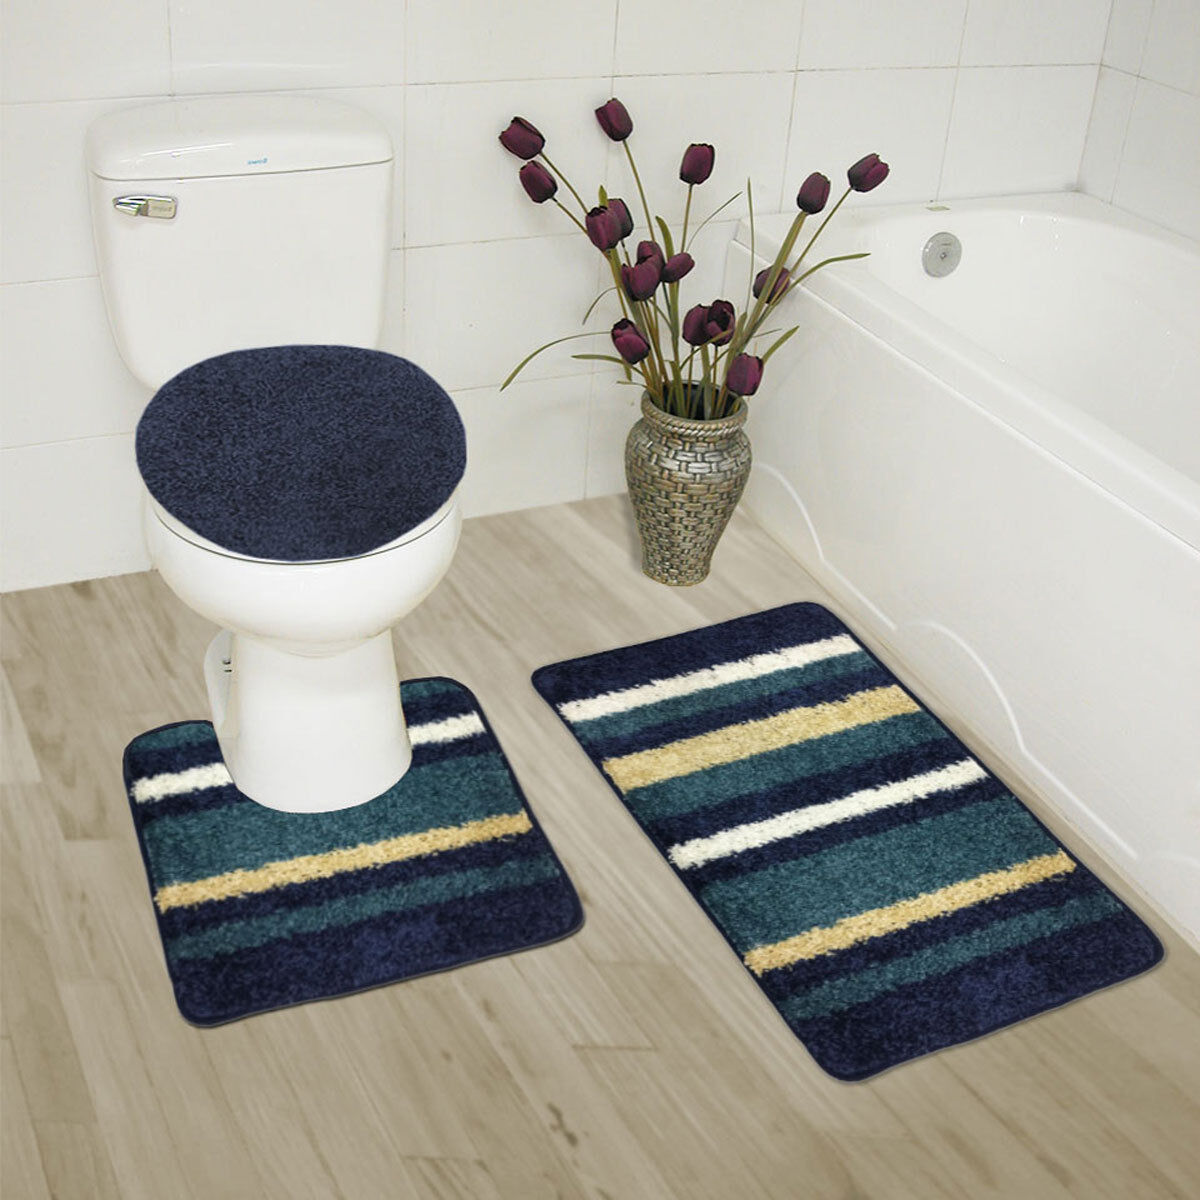 Abby 3 Pc Bathroom Rug Set, Bath Rug, Contour Rug, Lid